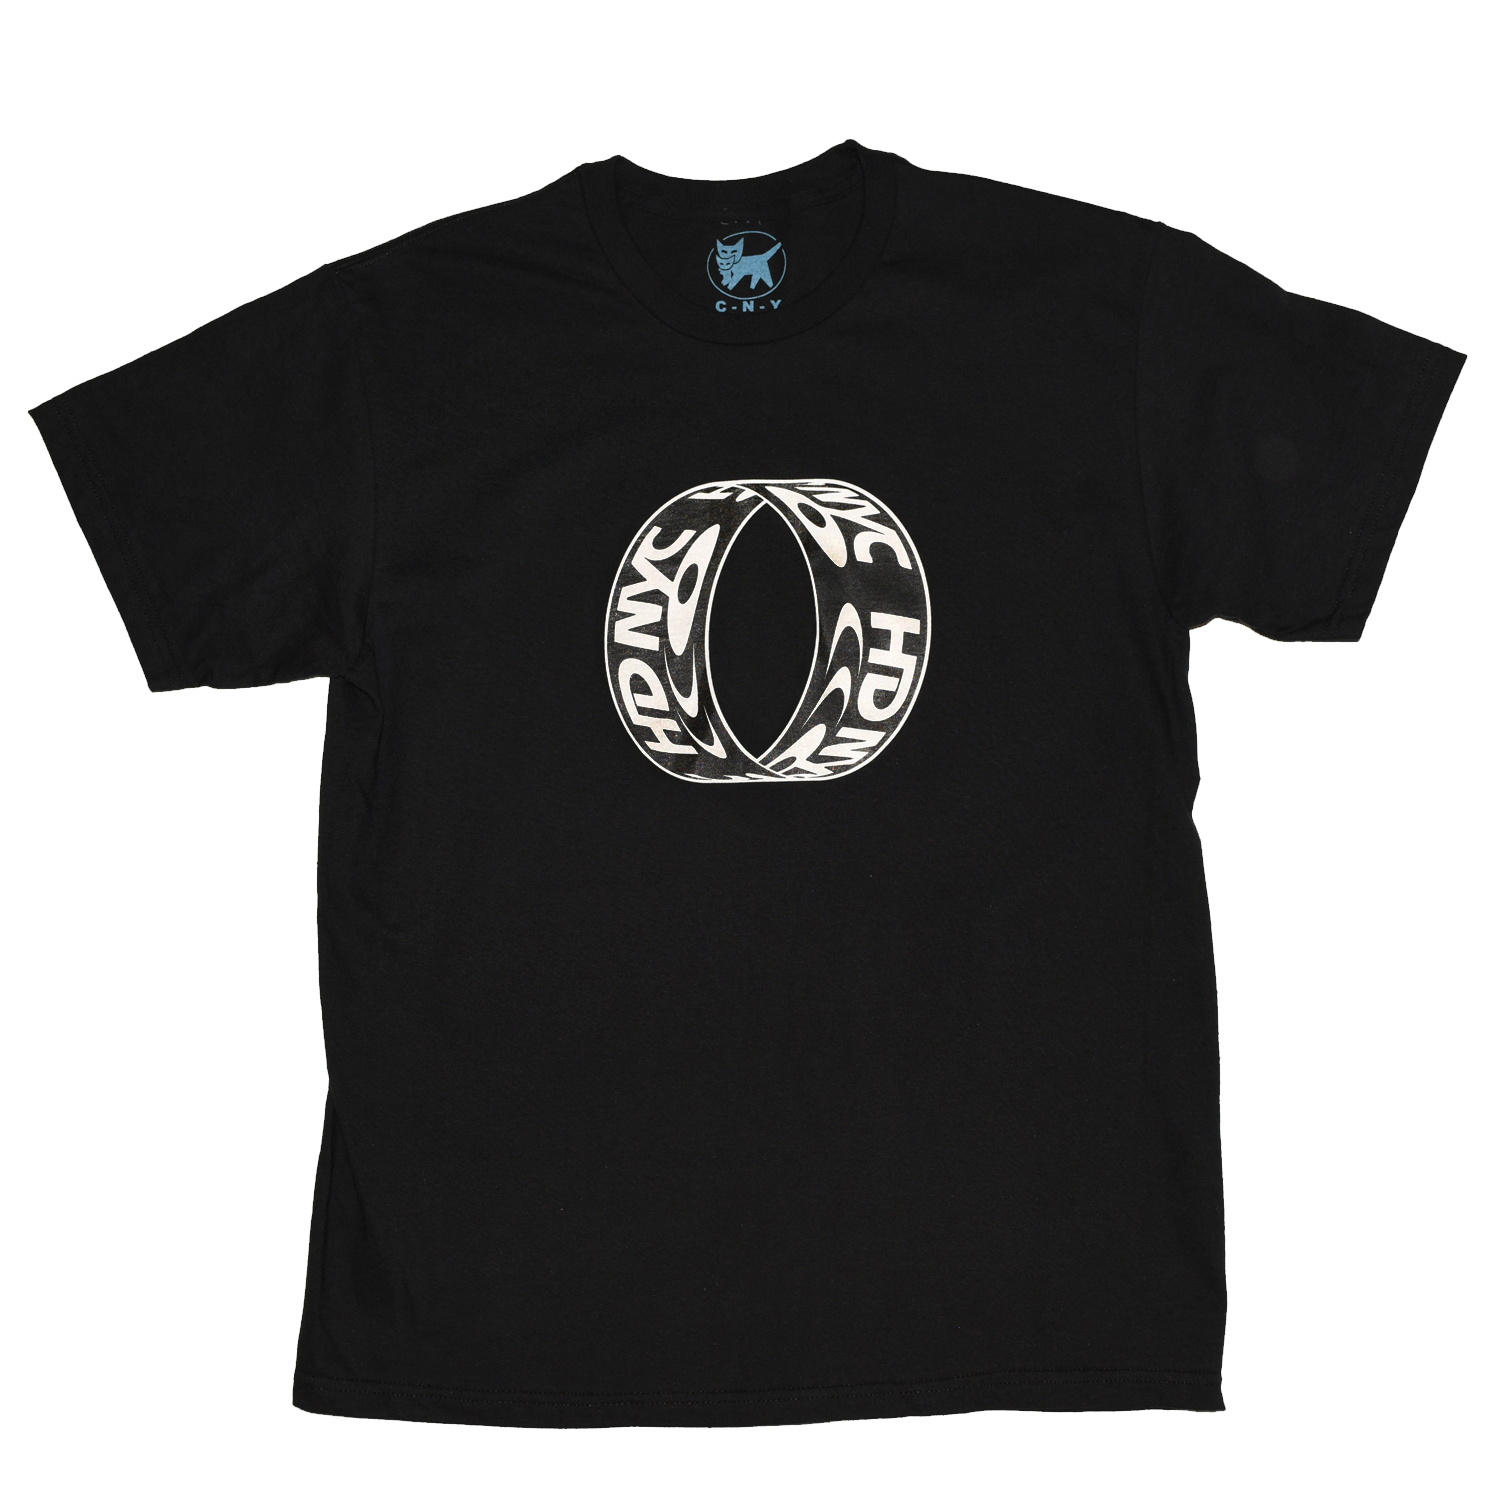 INFINITE LOOP HDNYC BLACK T